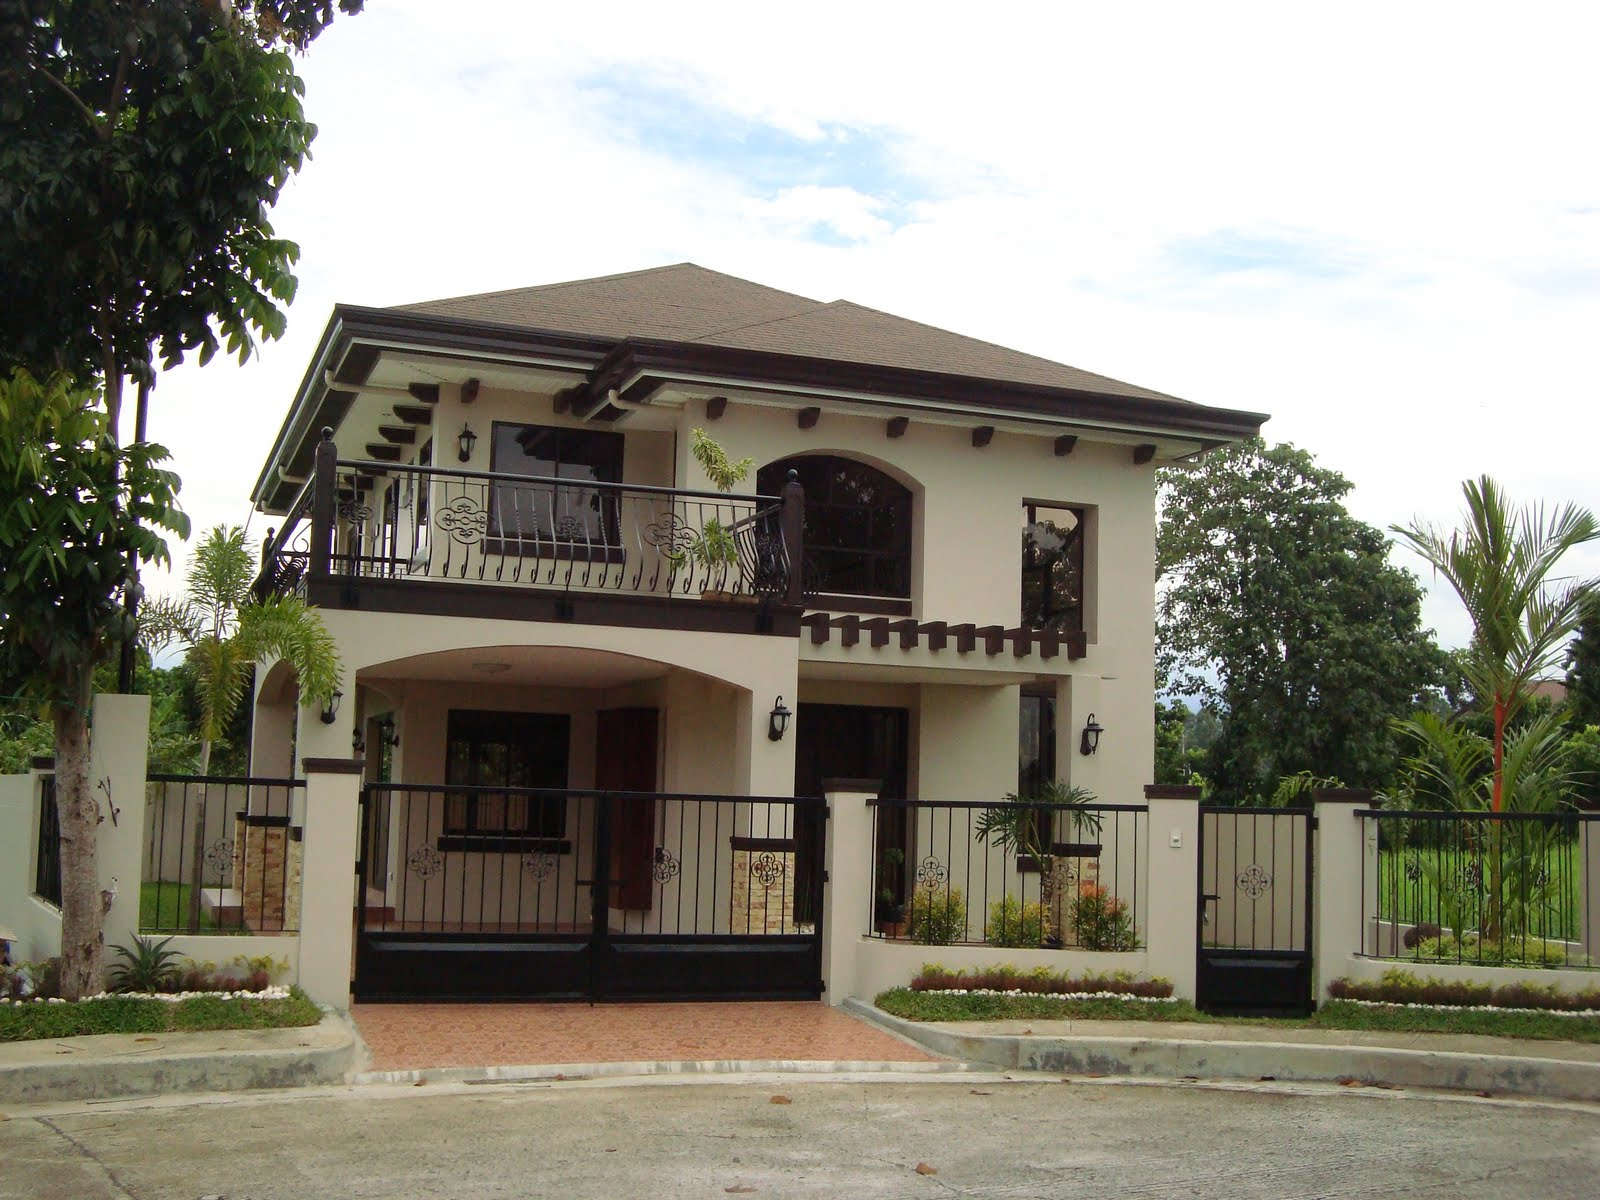 Modern house designs in the philippines pictures